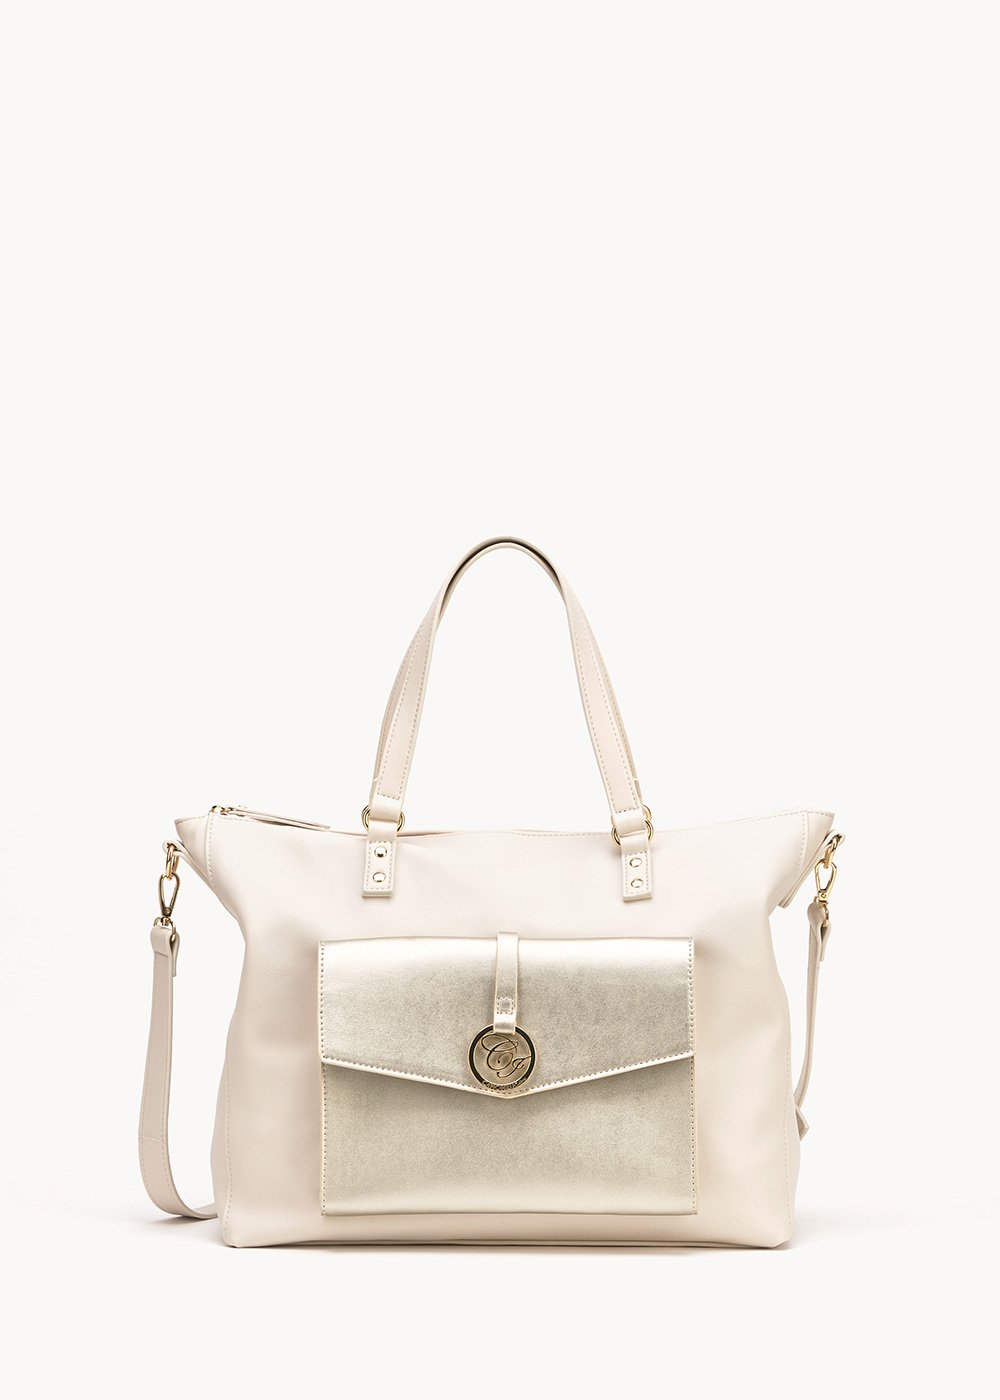 Bland white and gold shopping bag - Cocco / Gold	 - Woman